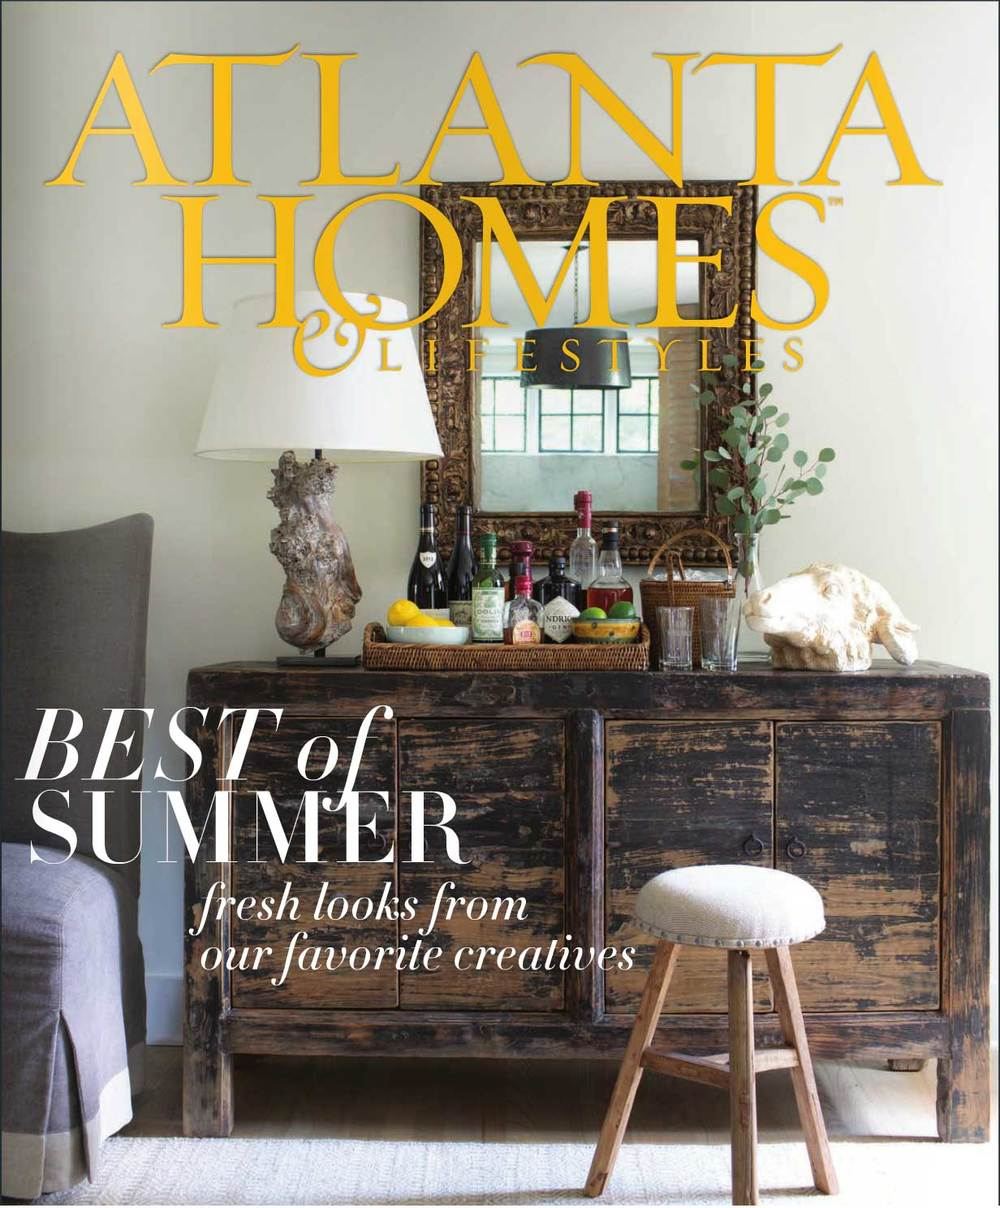 Atlanta Homes: Summer 2015